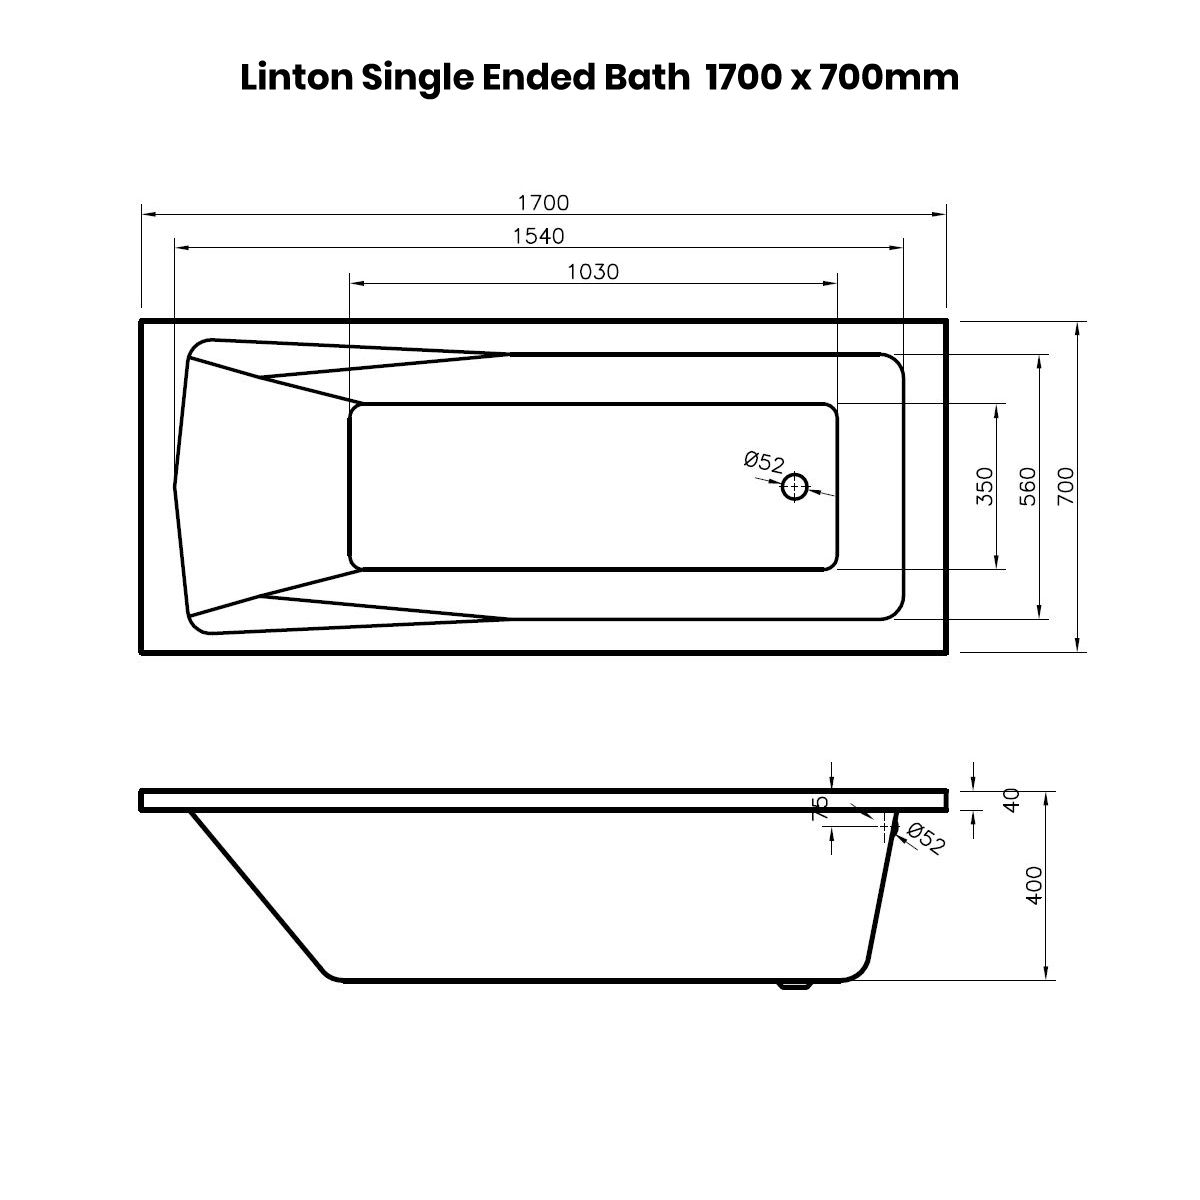 Premier Linton Single Ended Bath 1700 x 700mm Dimensions